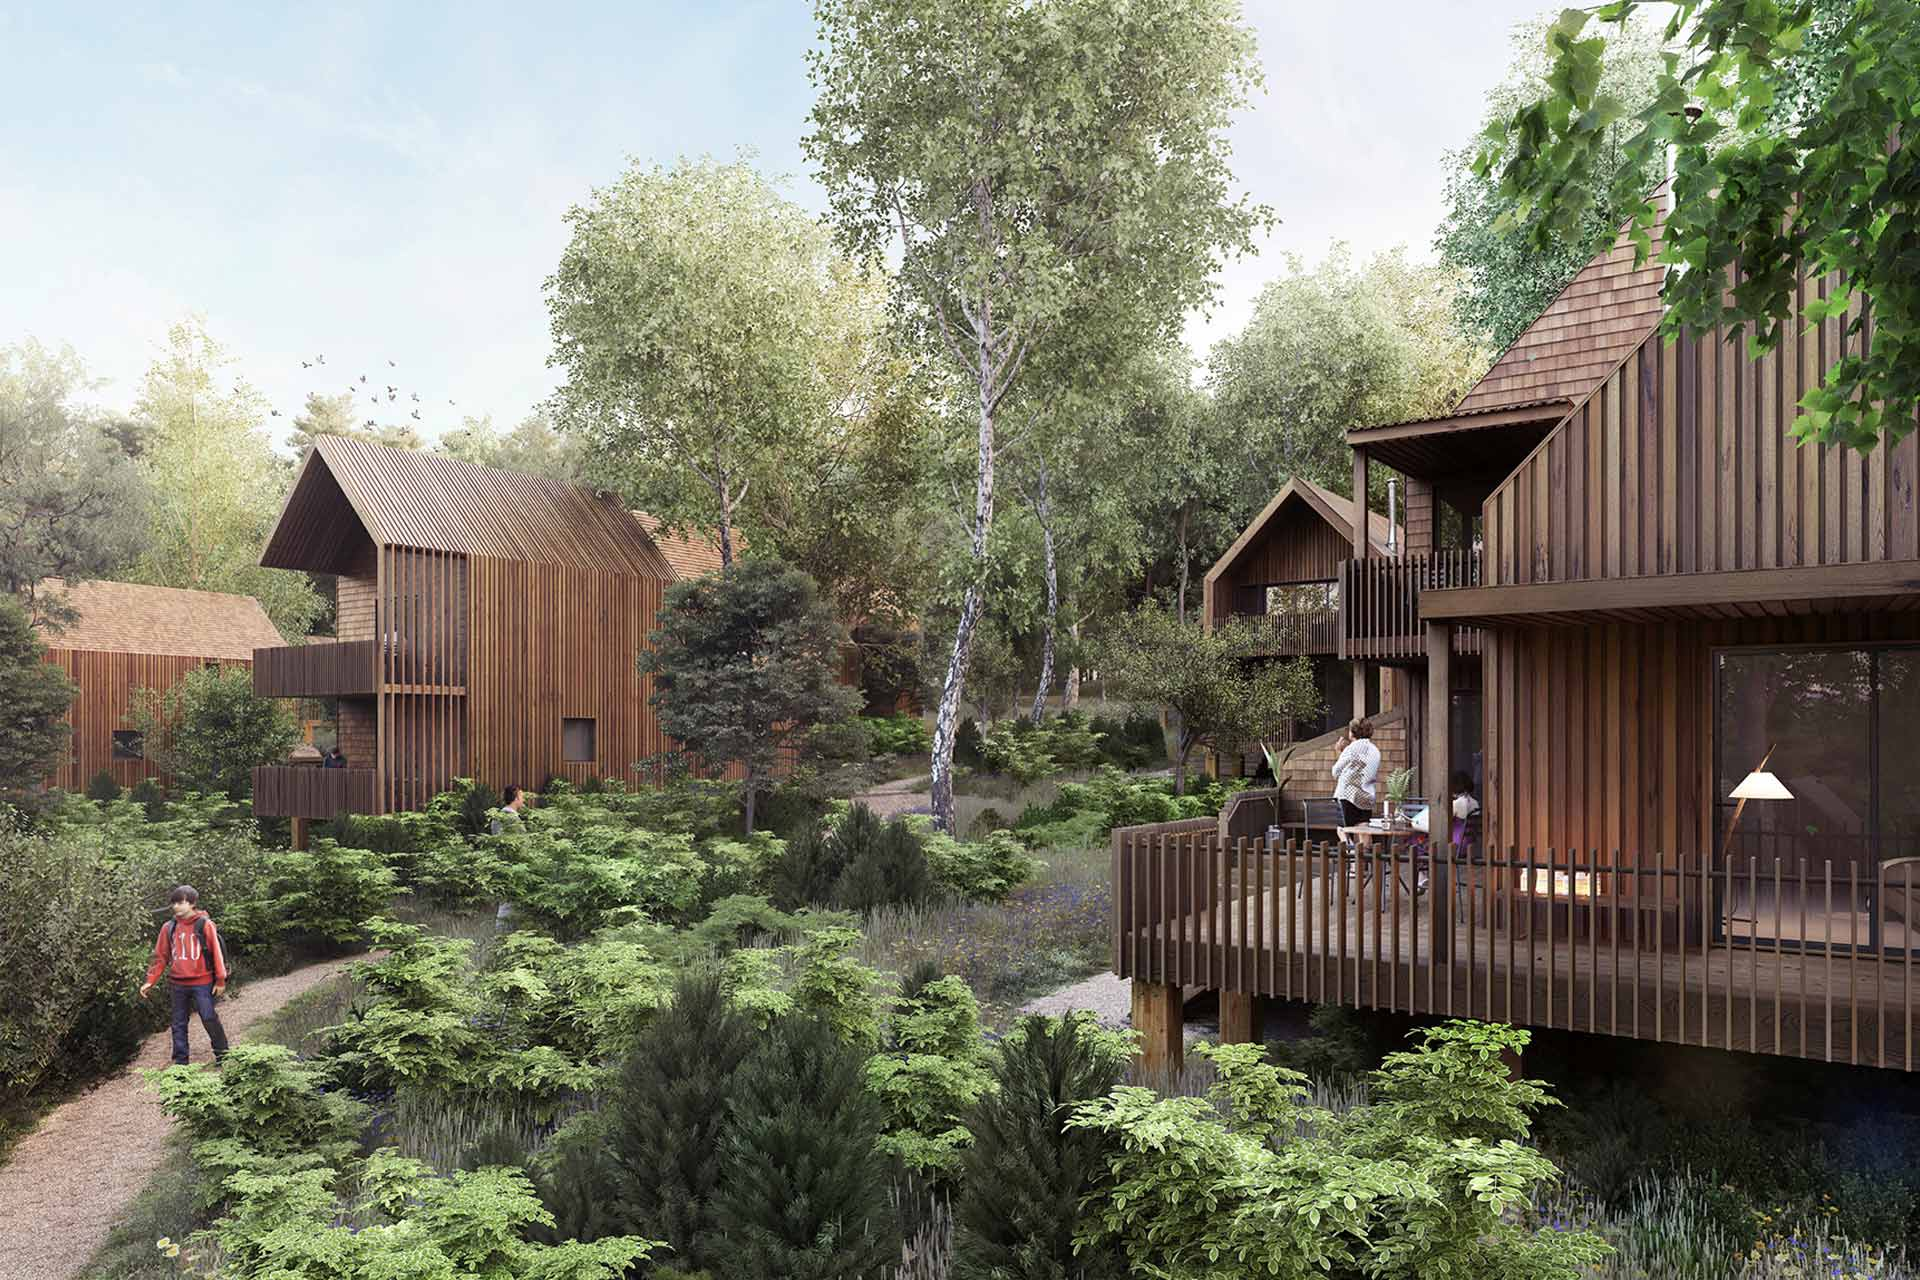 Upland Park Lodges in the South Downs National Park, UK